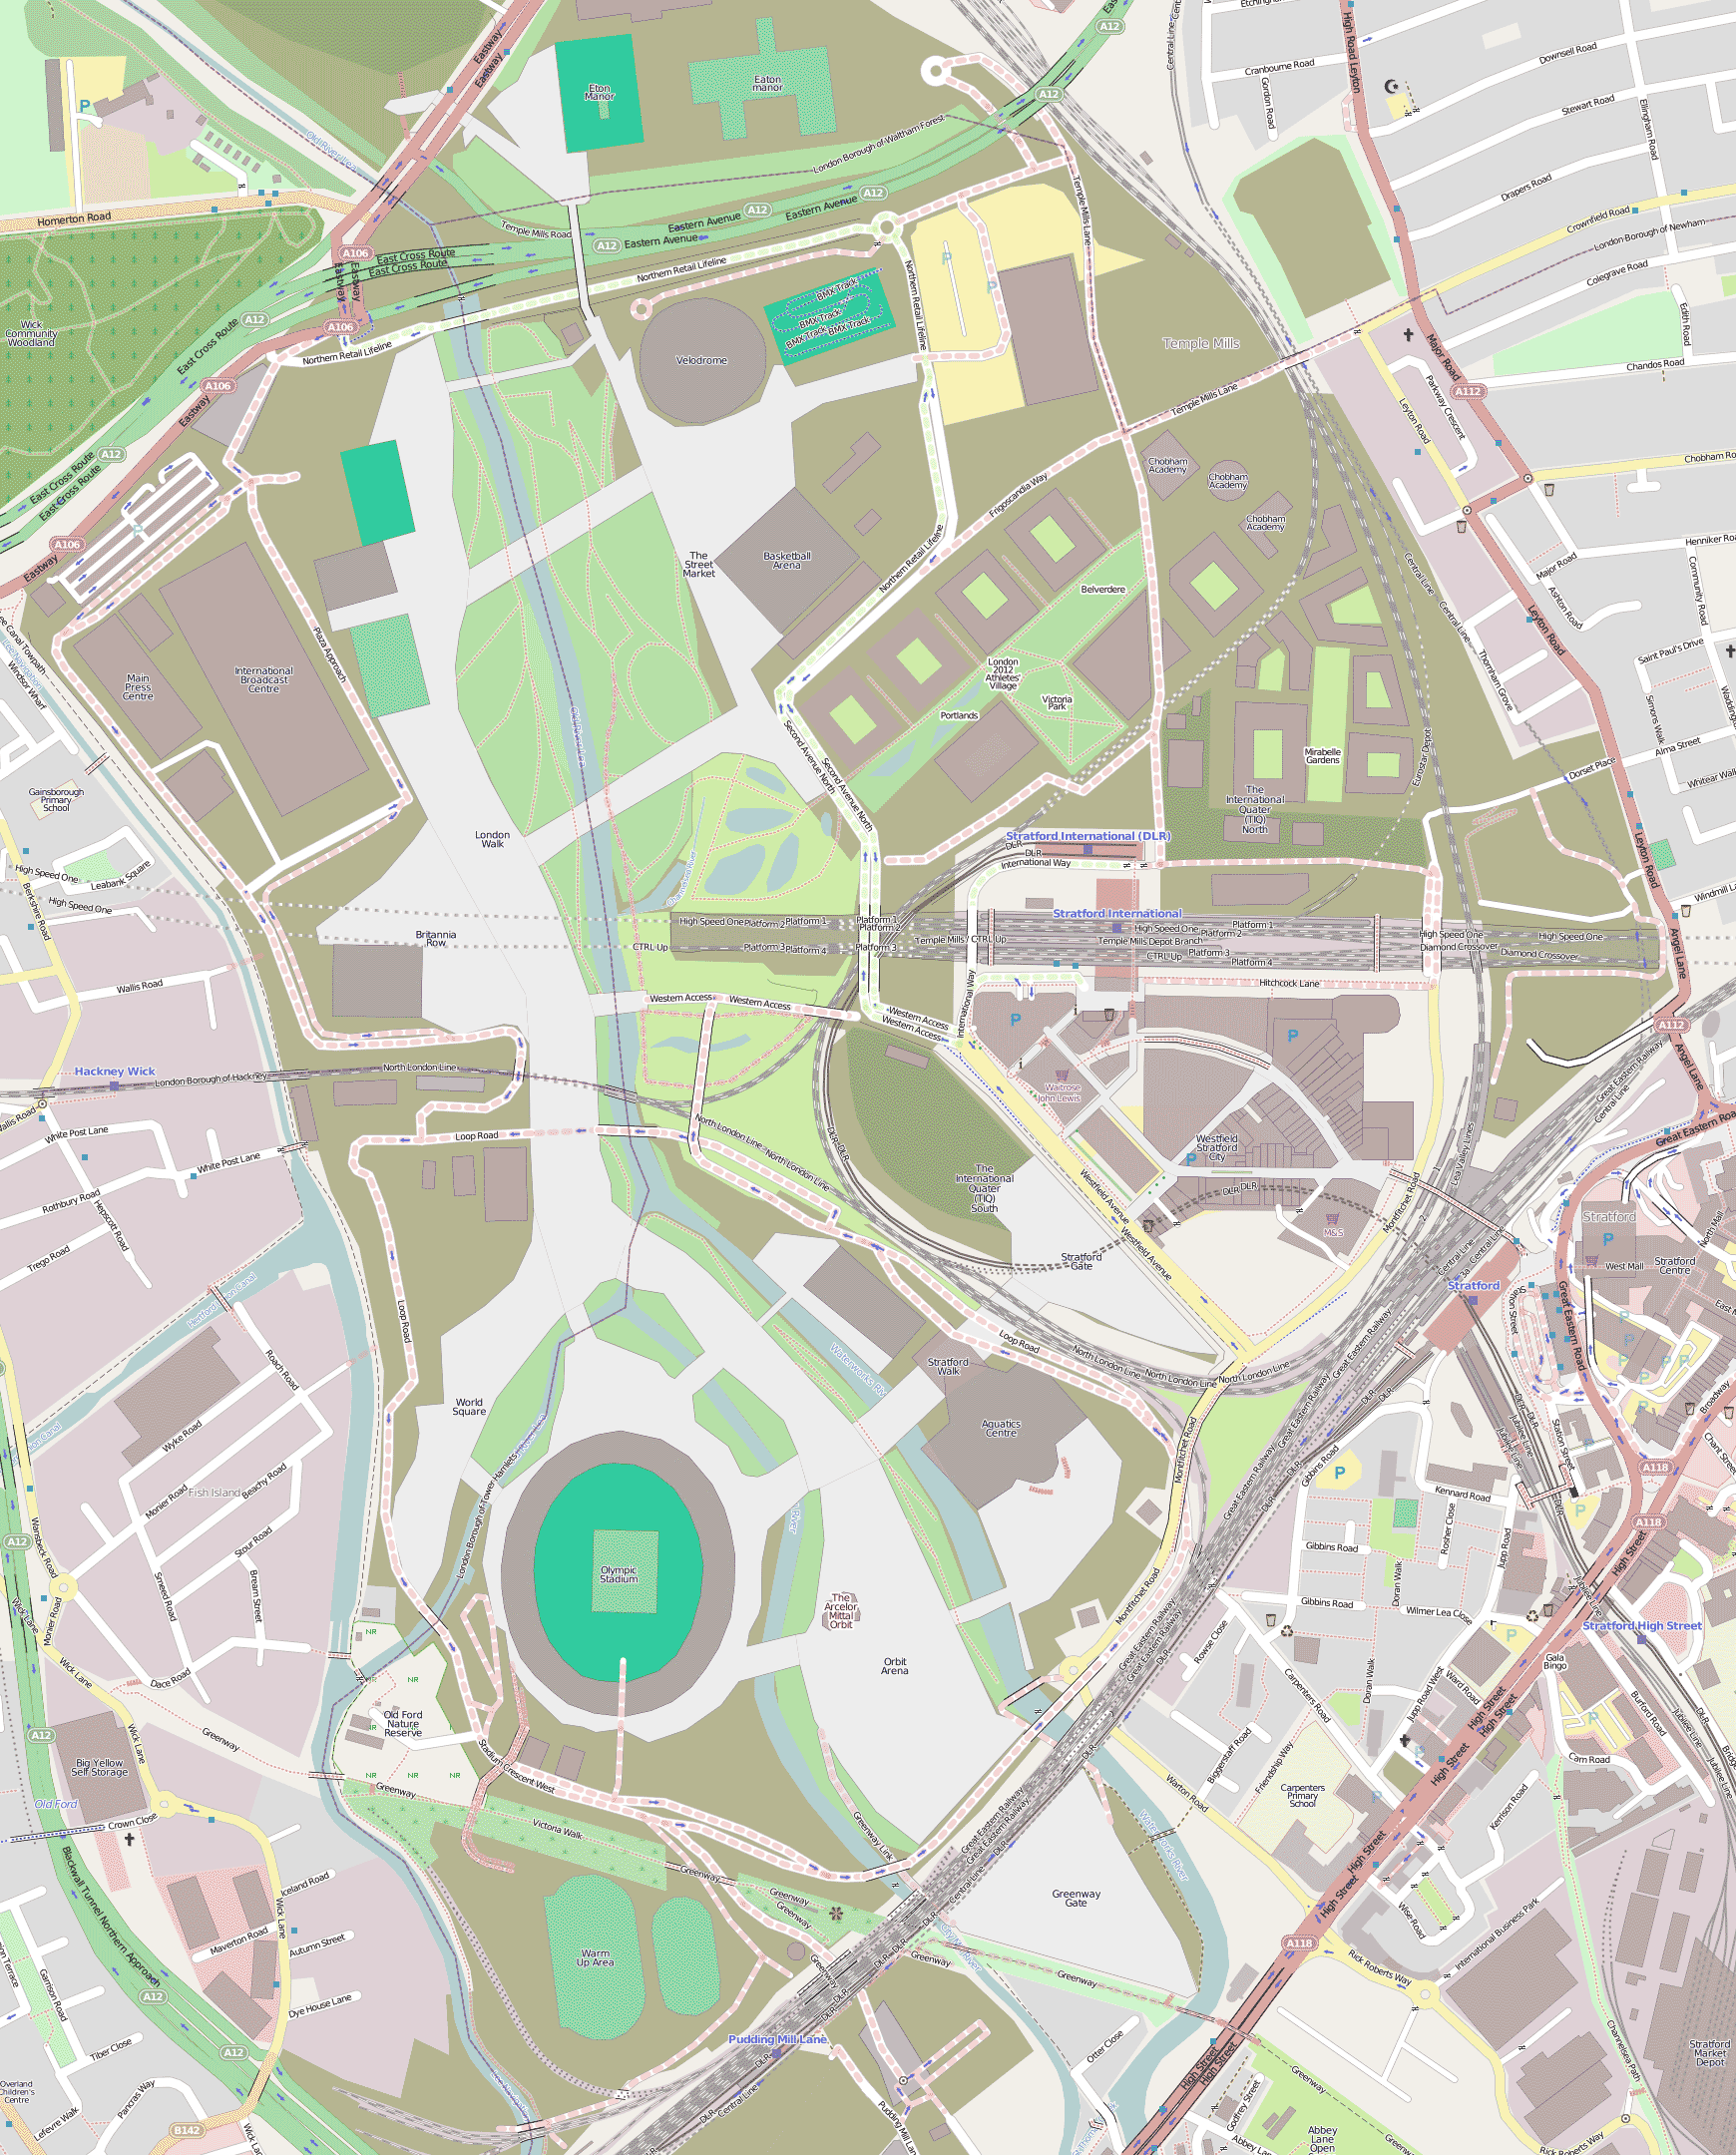 Queen Elizabeth Olympic Park Map File:Queen Elizabeth Olympic Park map.png   Wikimedia Commons Queen Elizabeth Olympic Park Map